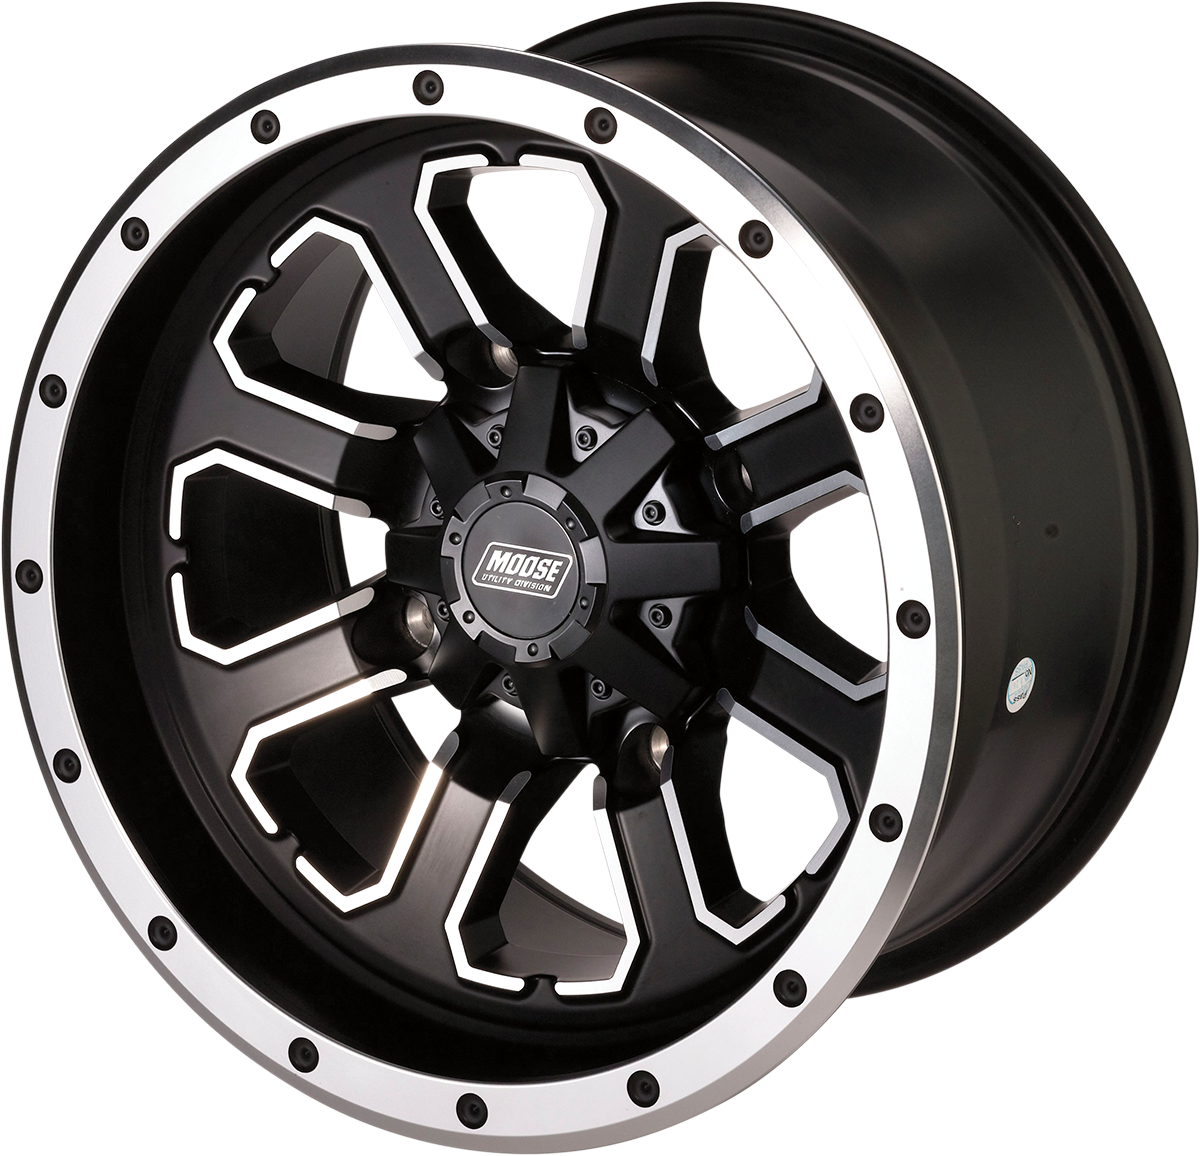 Moose 12x7 / 12x8 4x136 548X vannesarja Can-Am